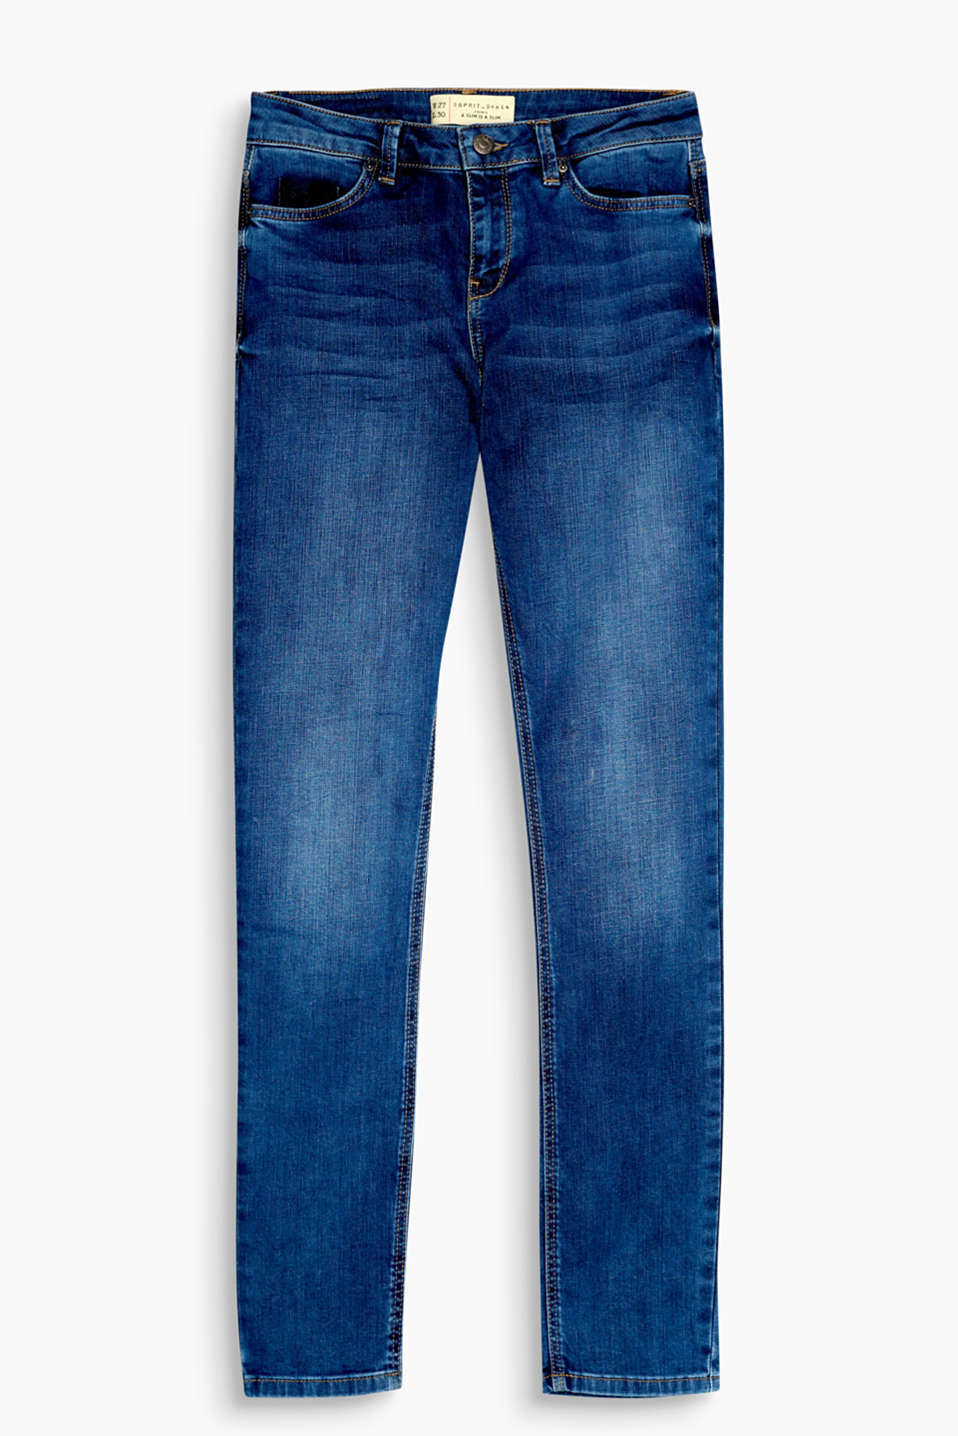 En denim de coton au confort stretch : jean skinny à effets délavés pour un look authentique